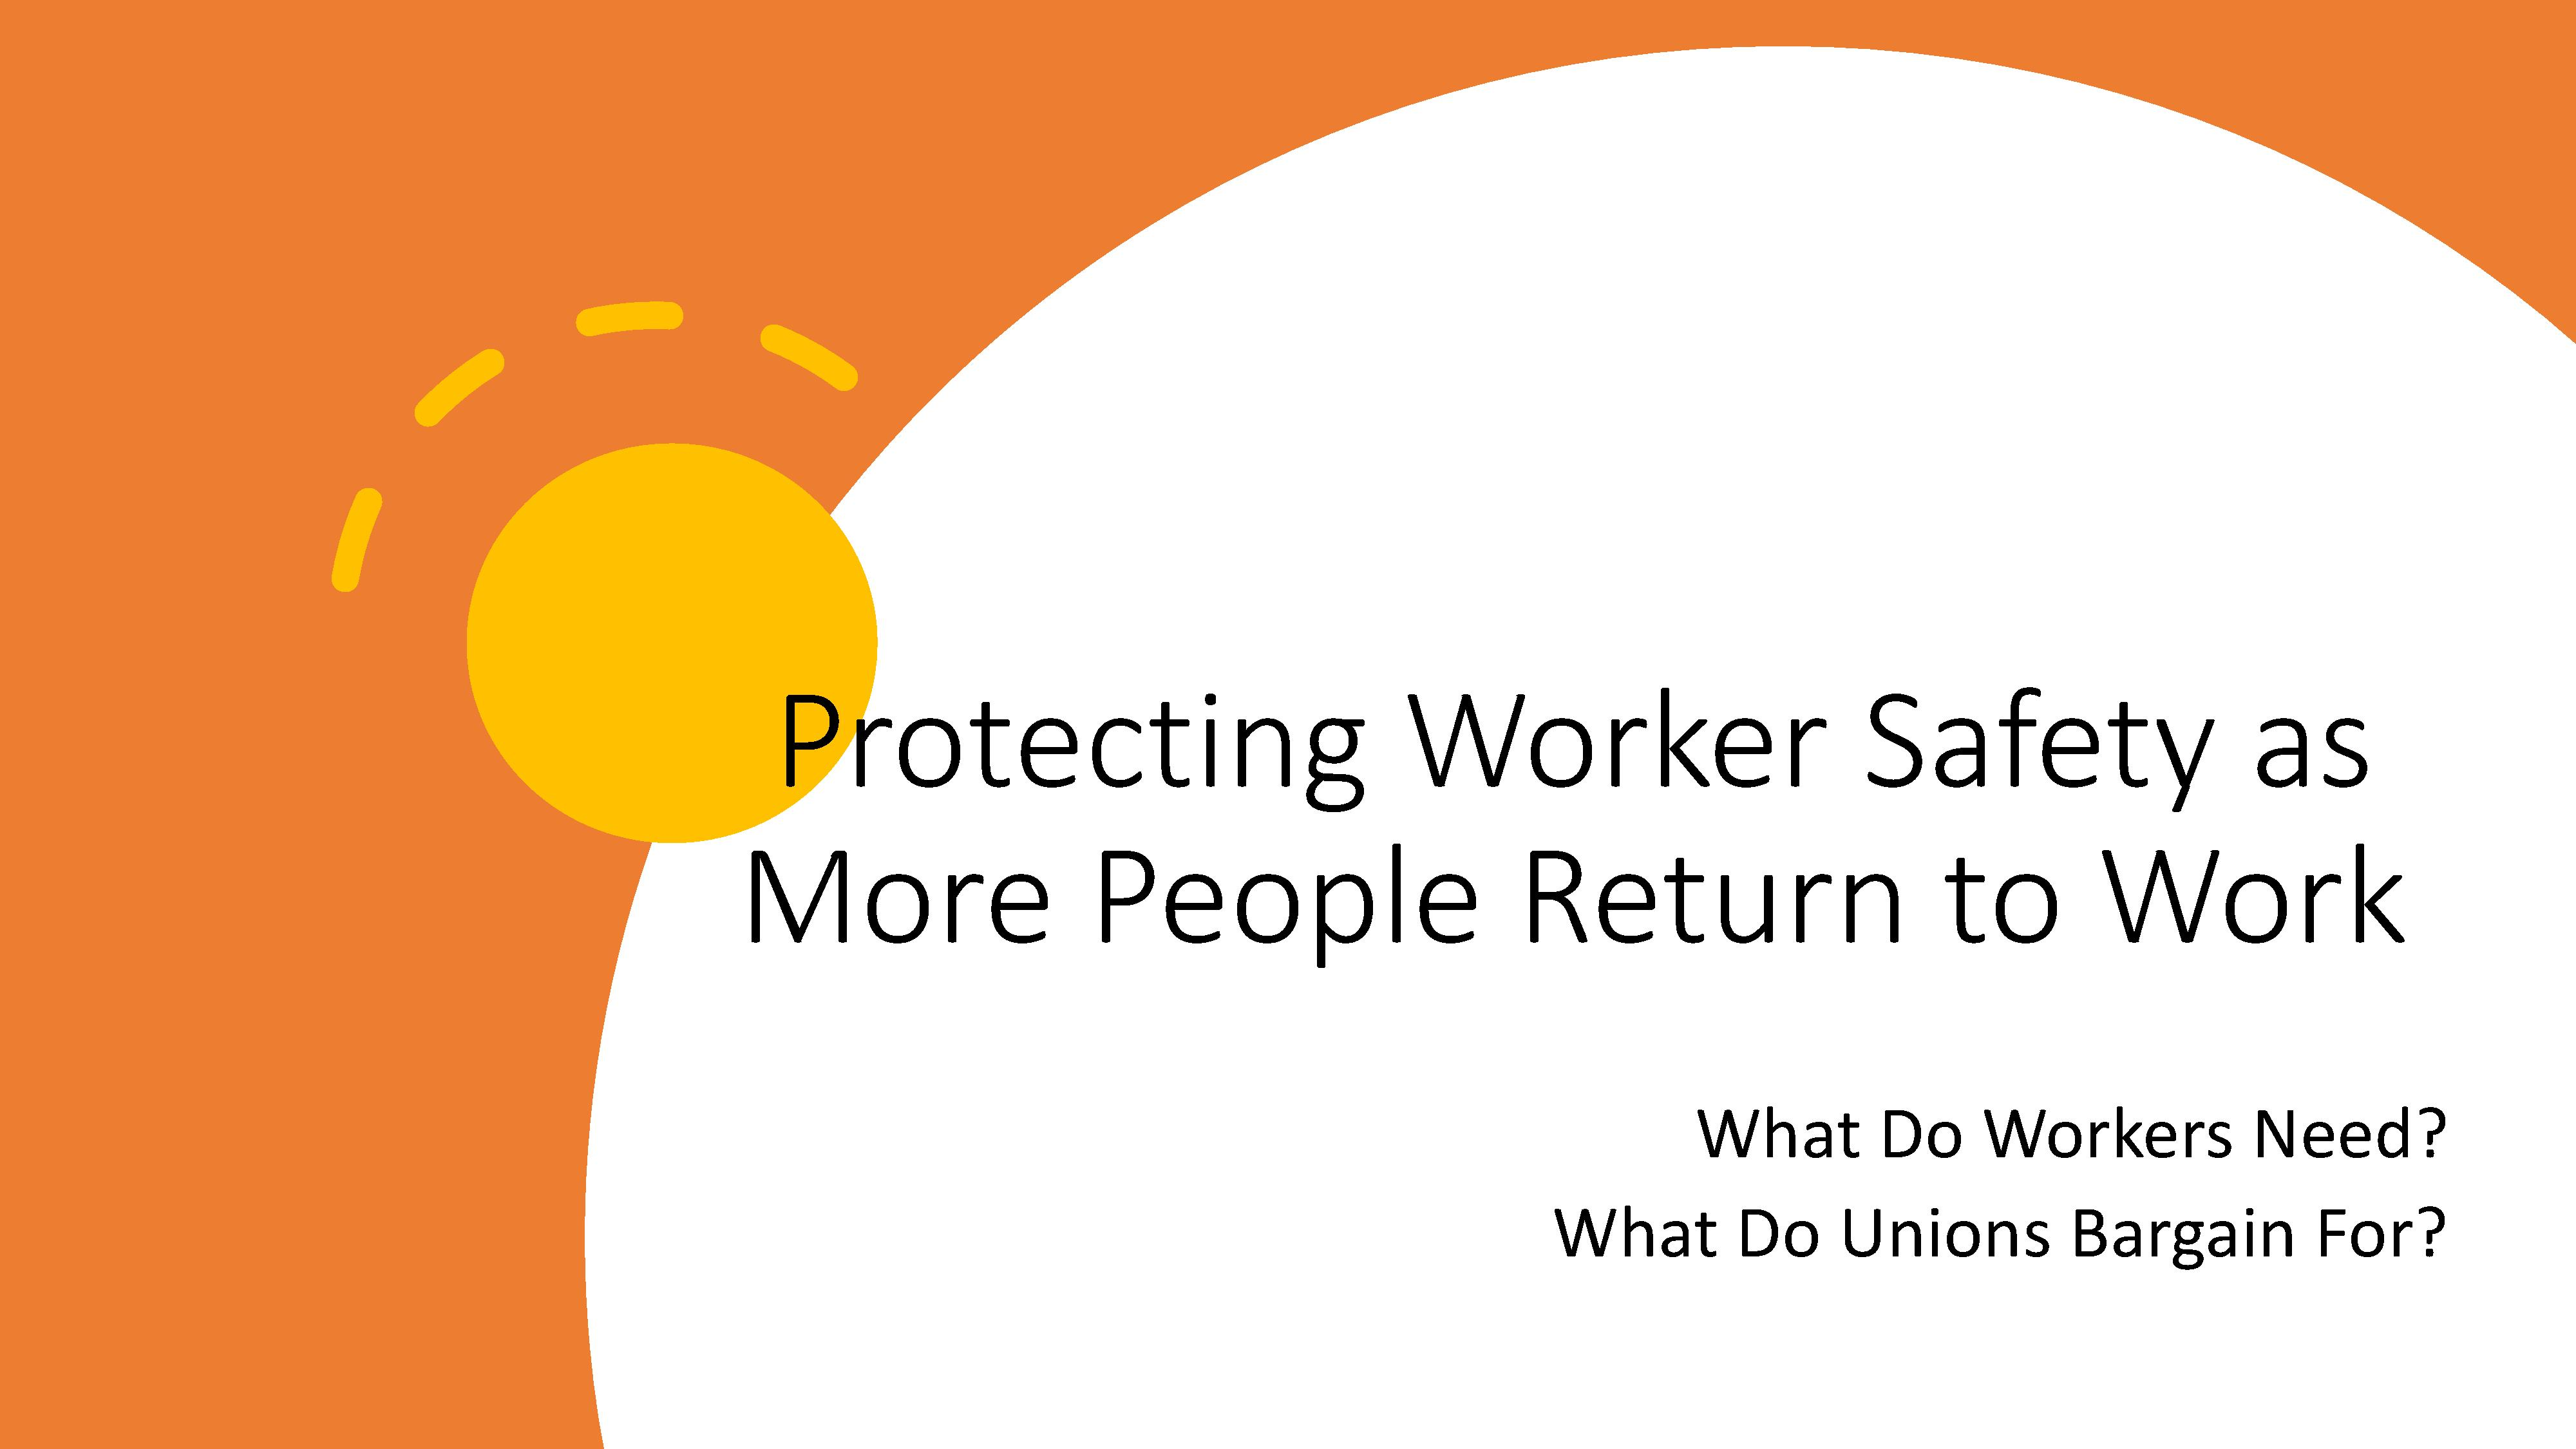 Protecting Worker Safety as More People Return to Work